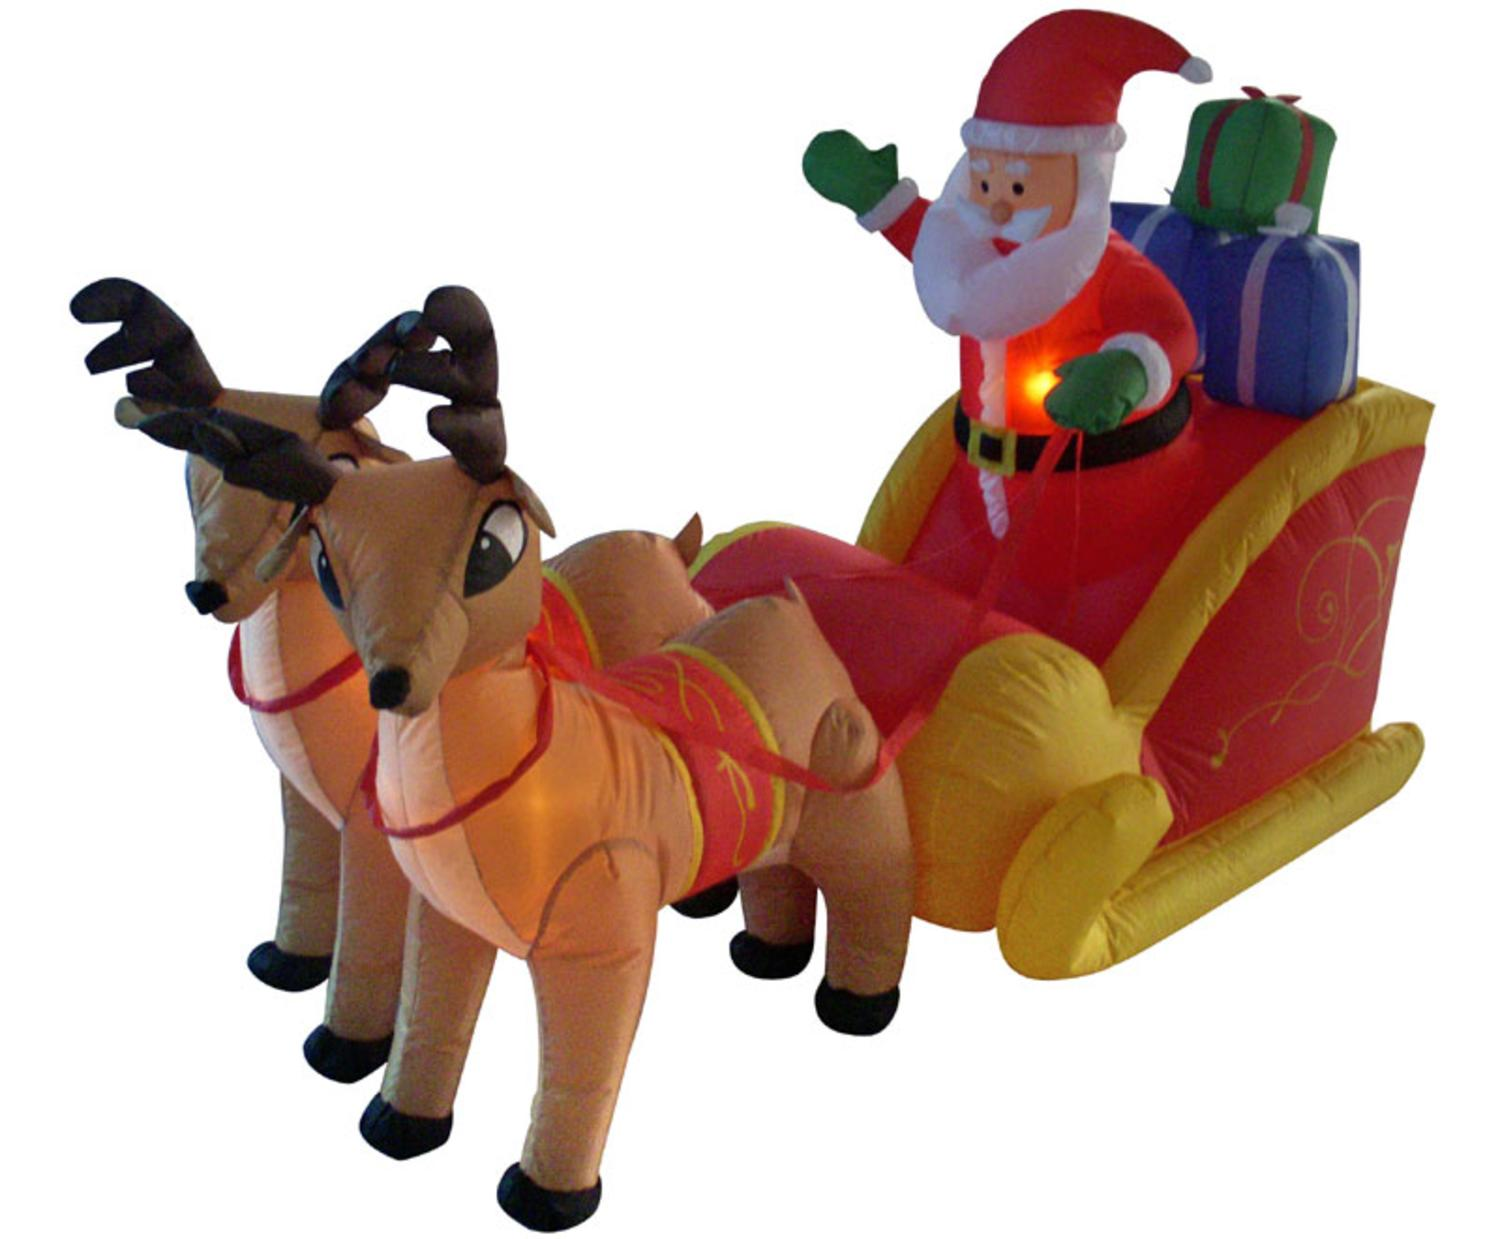 4' Inflatable Santa, Sleigh & Reindeer Lighted Christmas Outdoor Decoration - image 1 of zoomed image